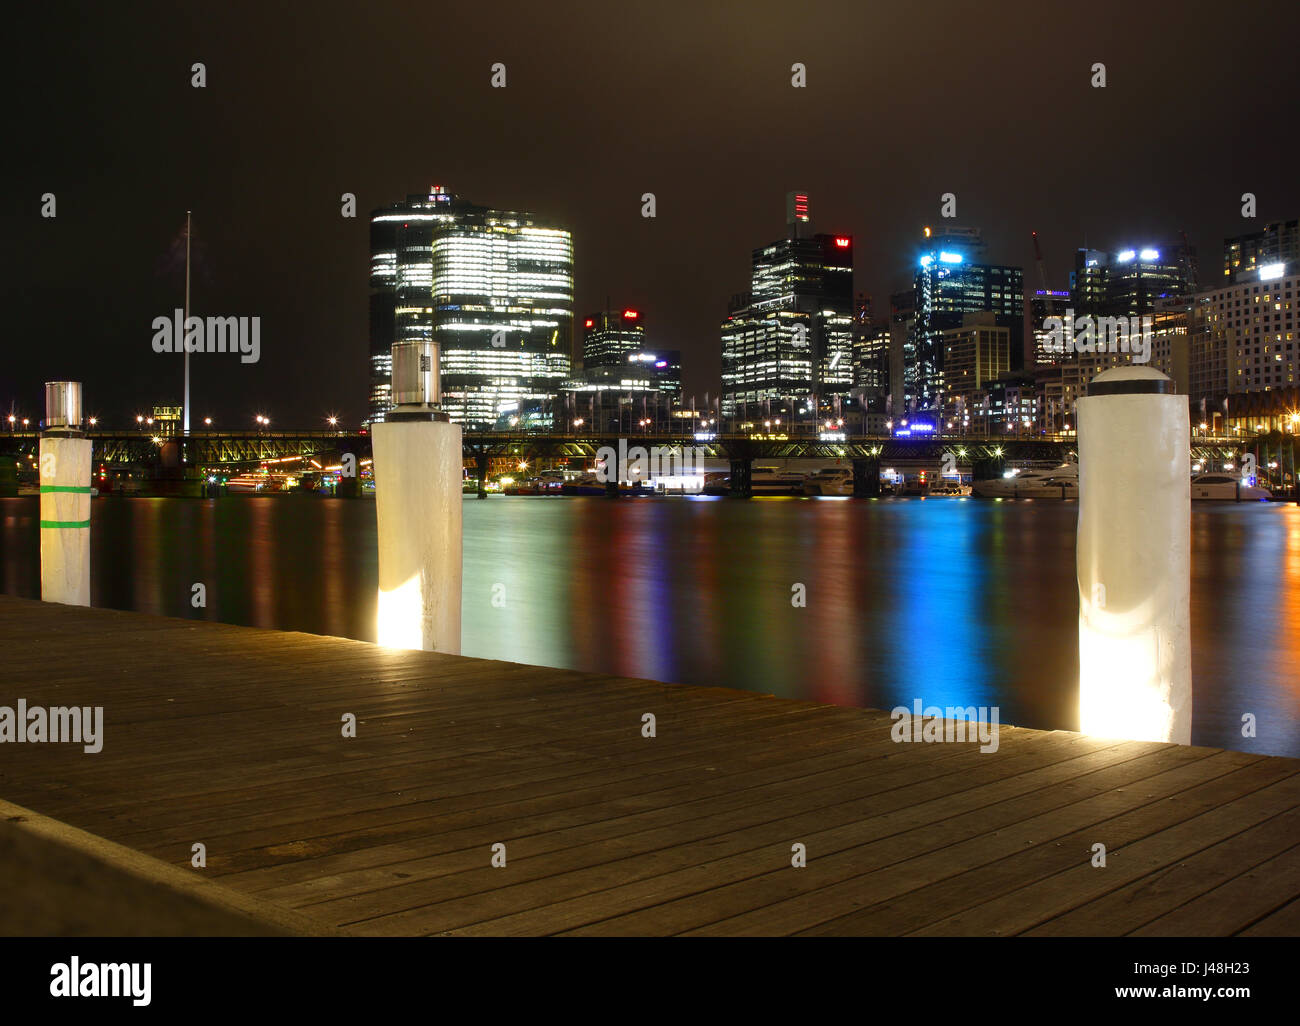 A night view accross Cockle Bay, Darling Harbour, Sydney showing reflections in the water of lights from restaurants - Stock Image